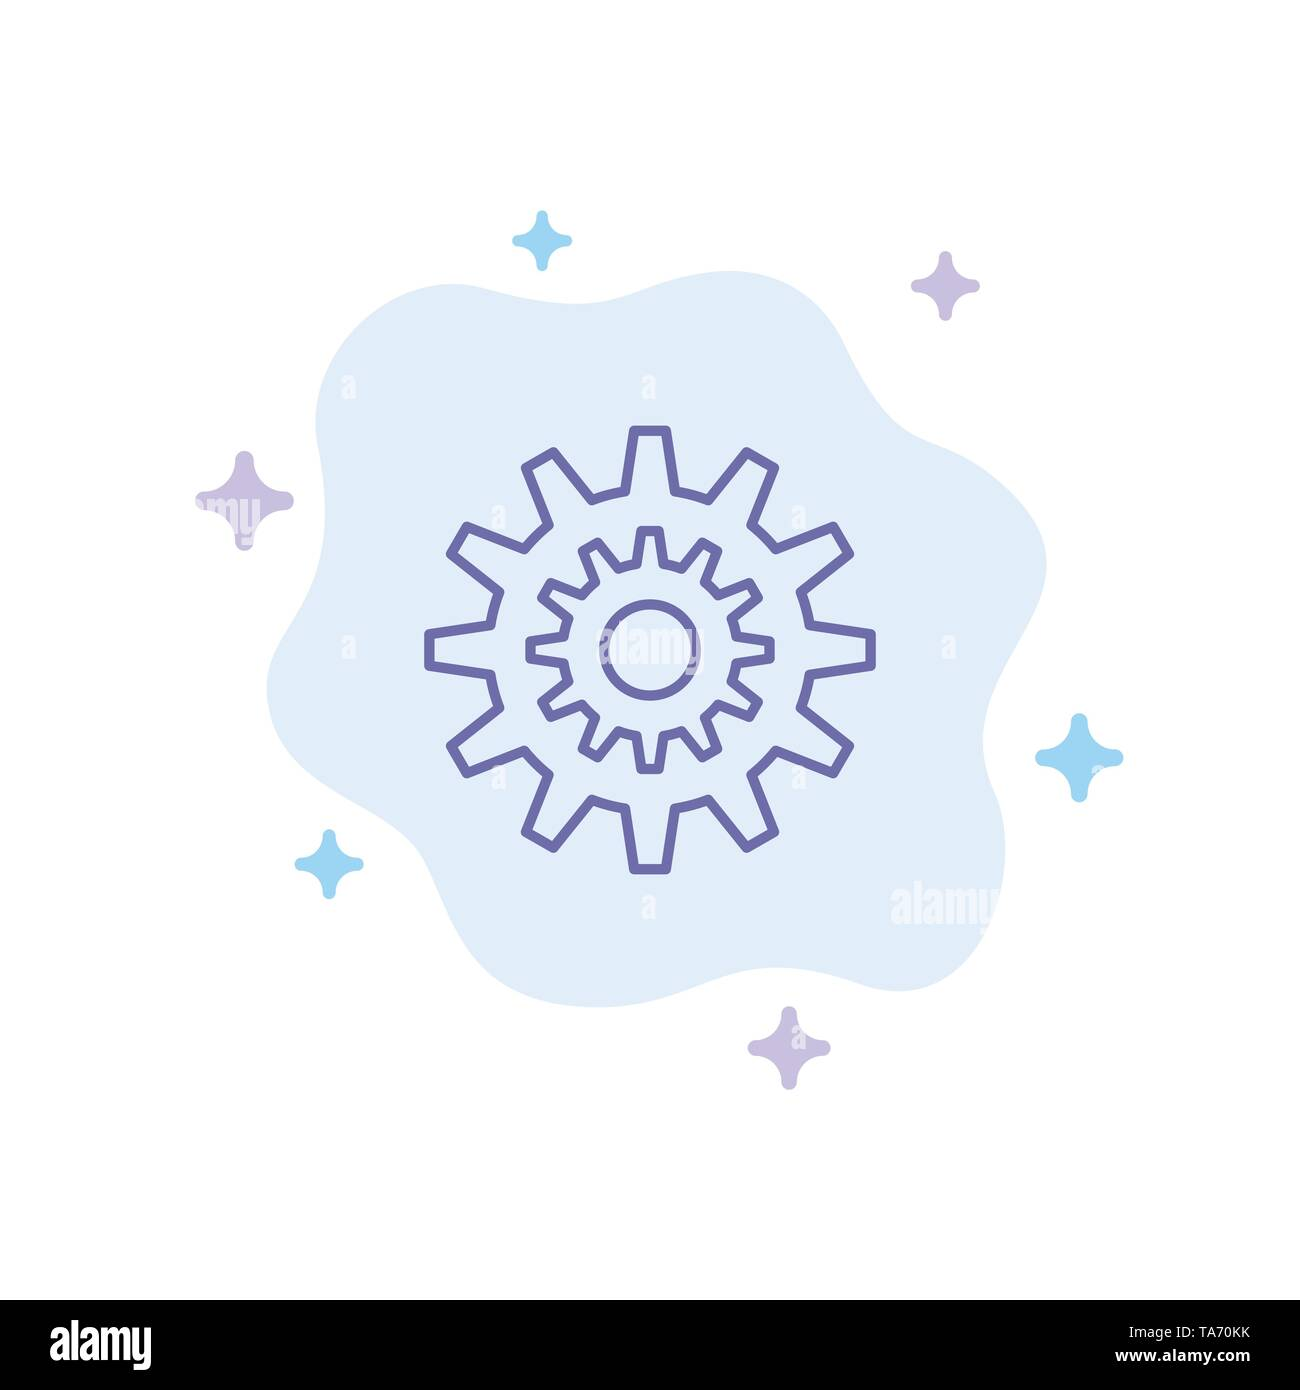 Settings, Cog, Gear, Production, System, Wheel, Work Blue Icon on Abstract Cloud Background - Stock Image